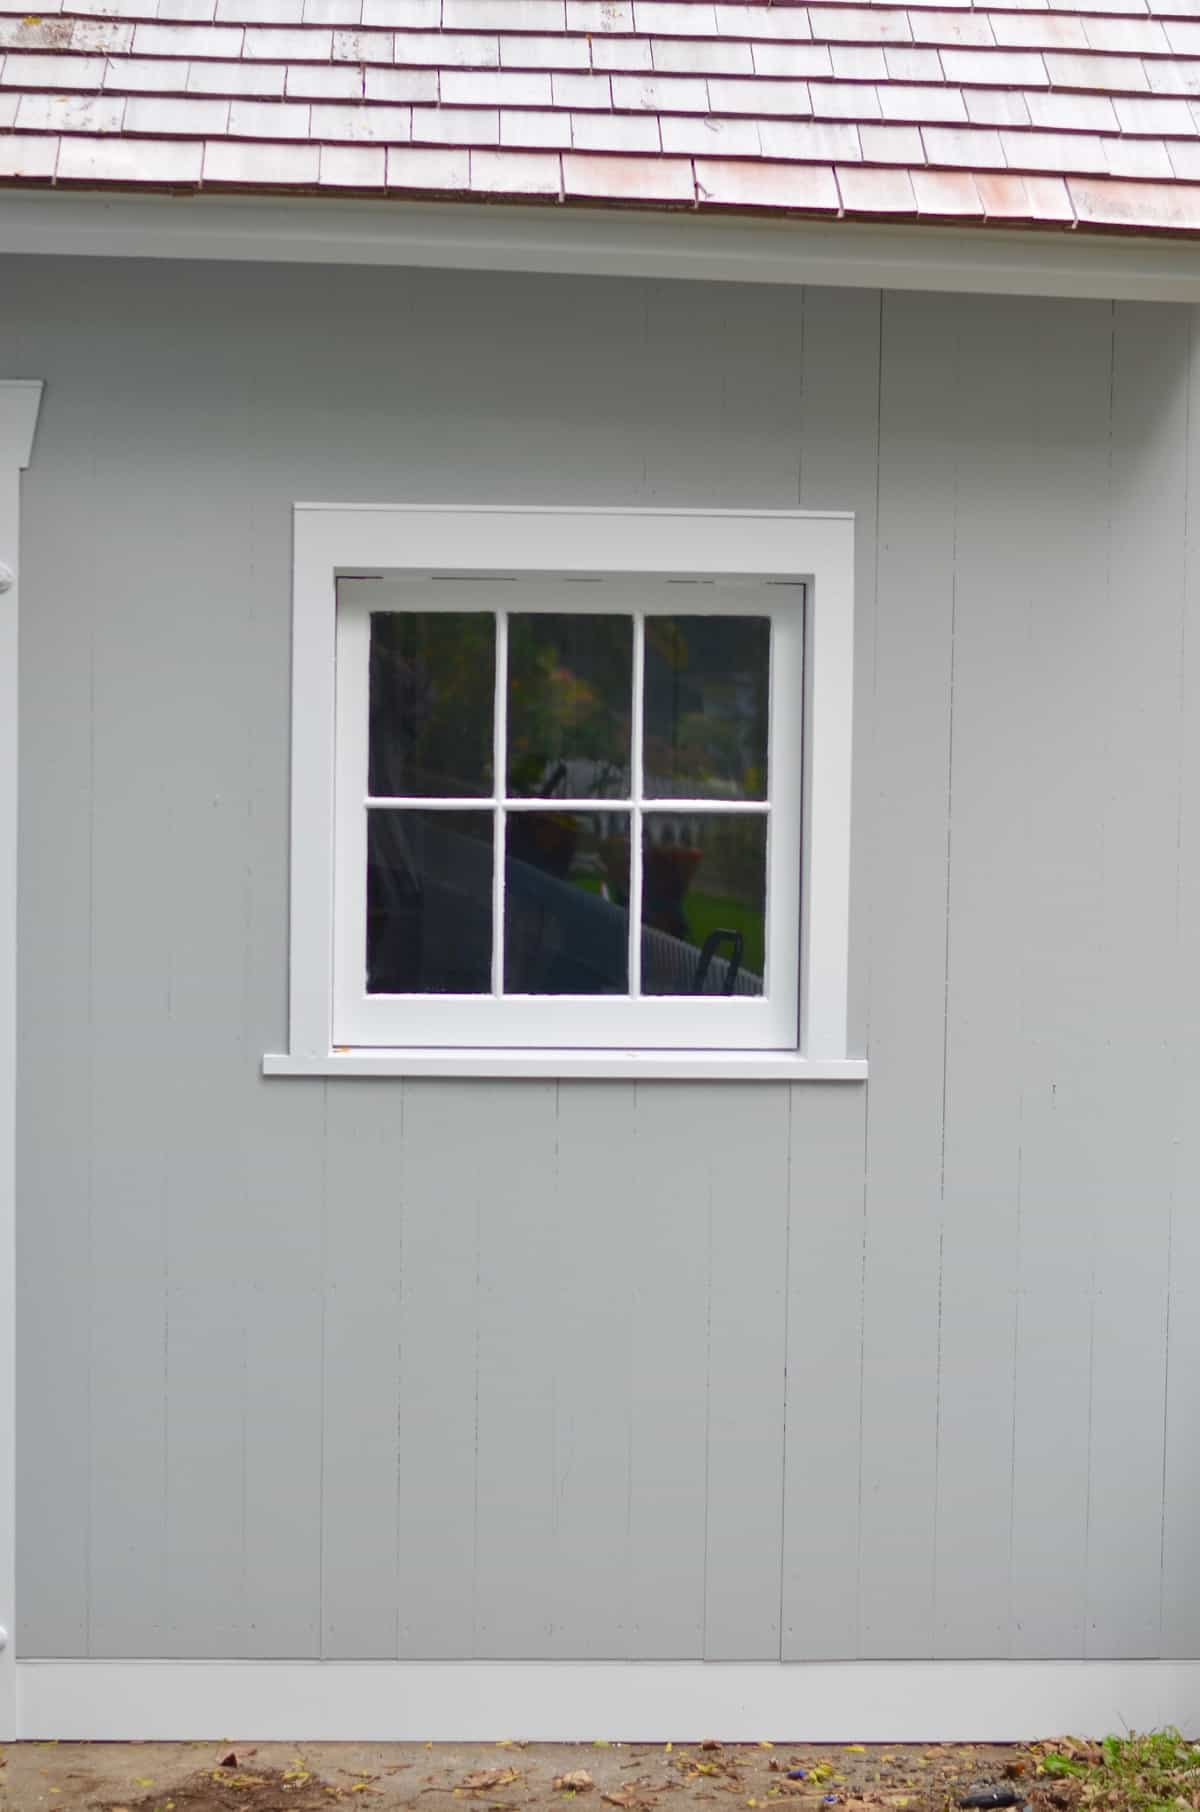 Backyard shed makeover- adding window boxes.